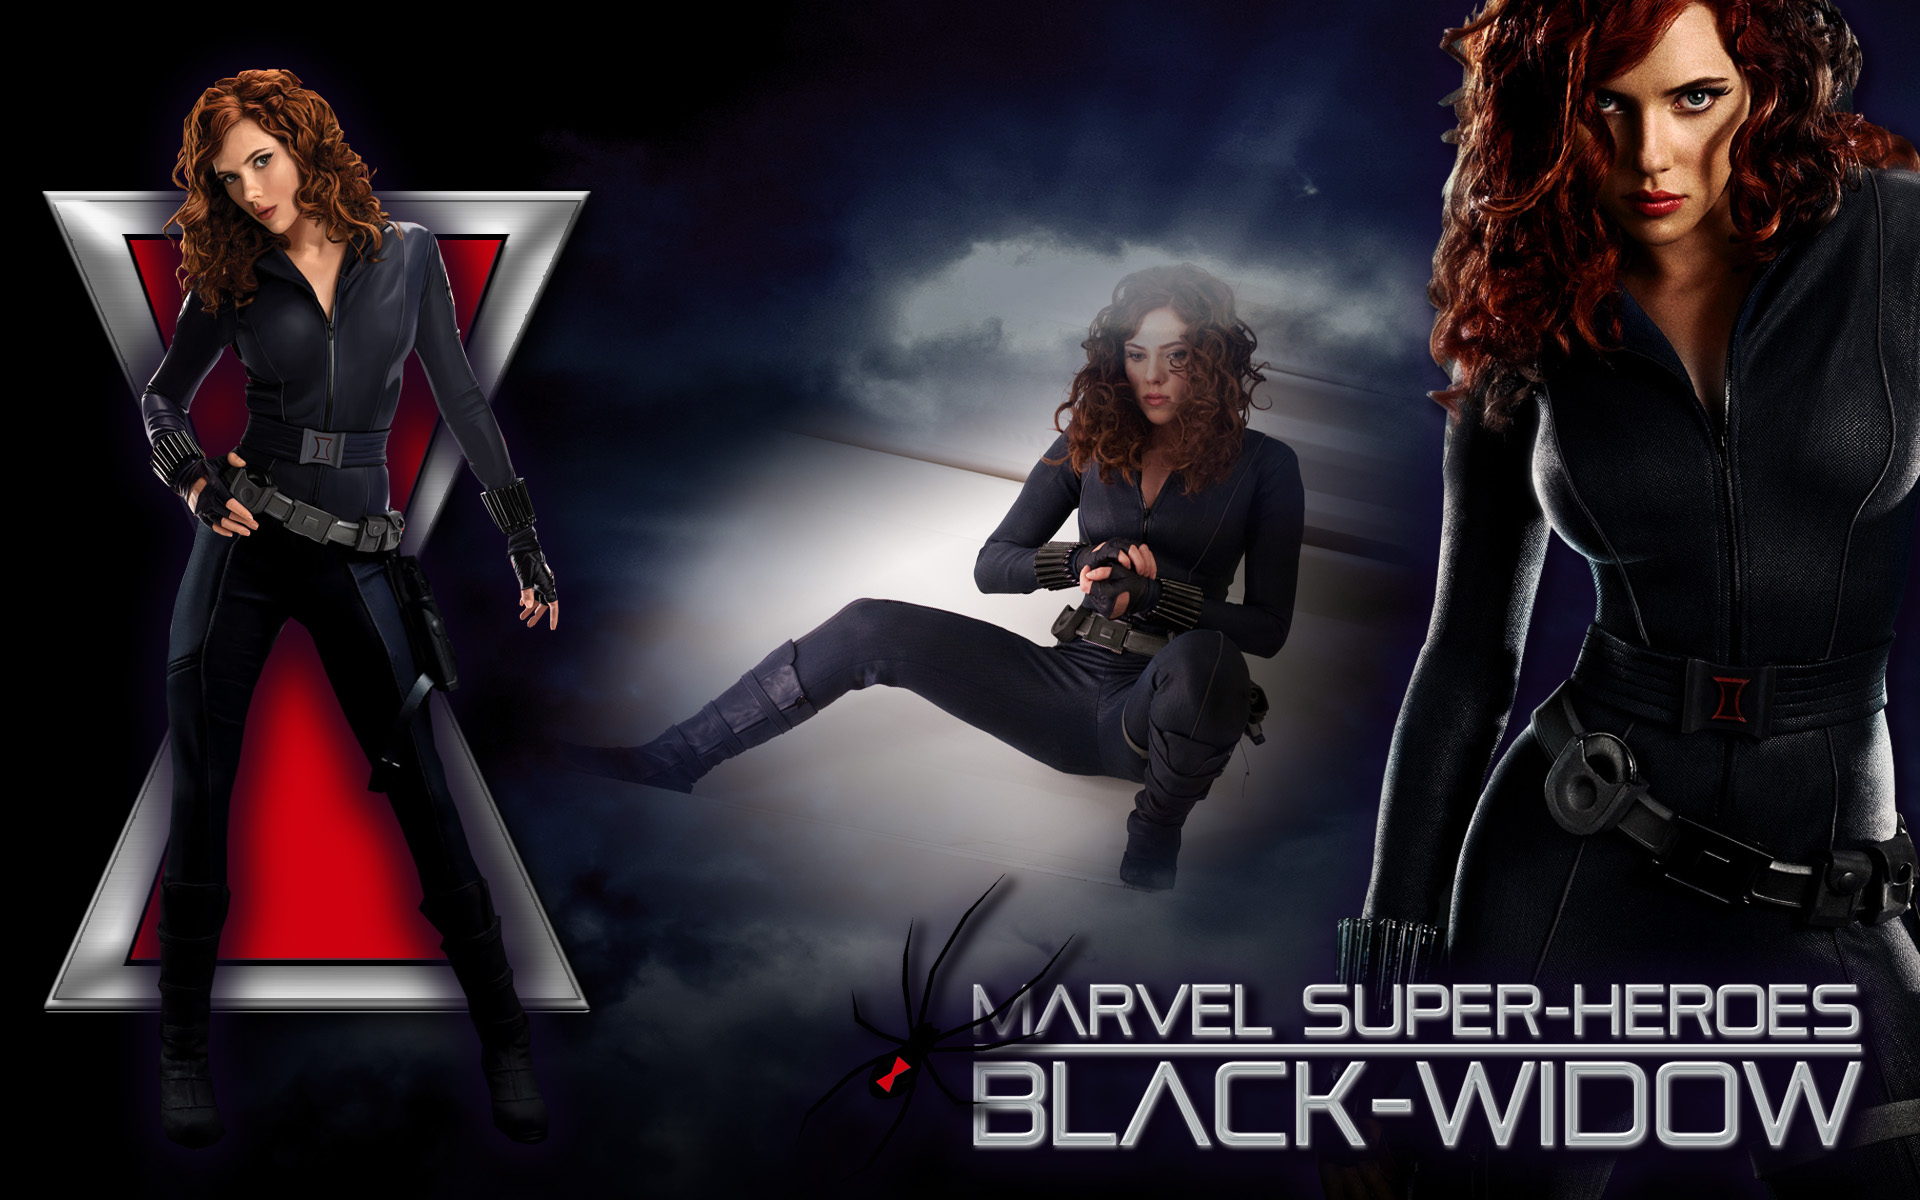 Cool Black Widow Wallpaper